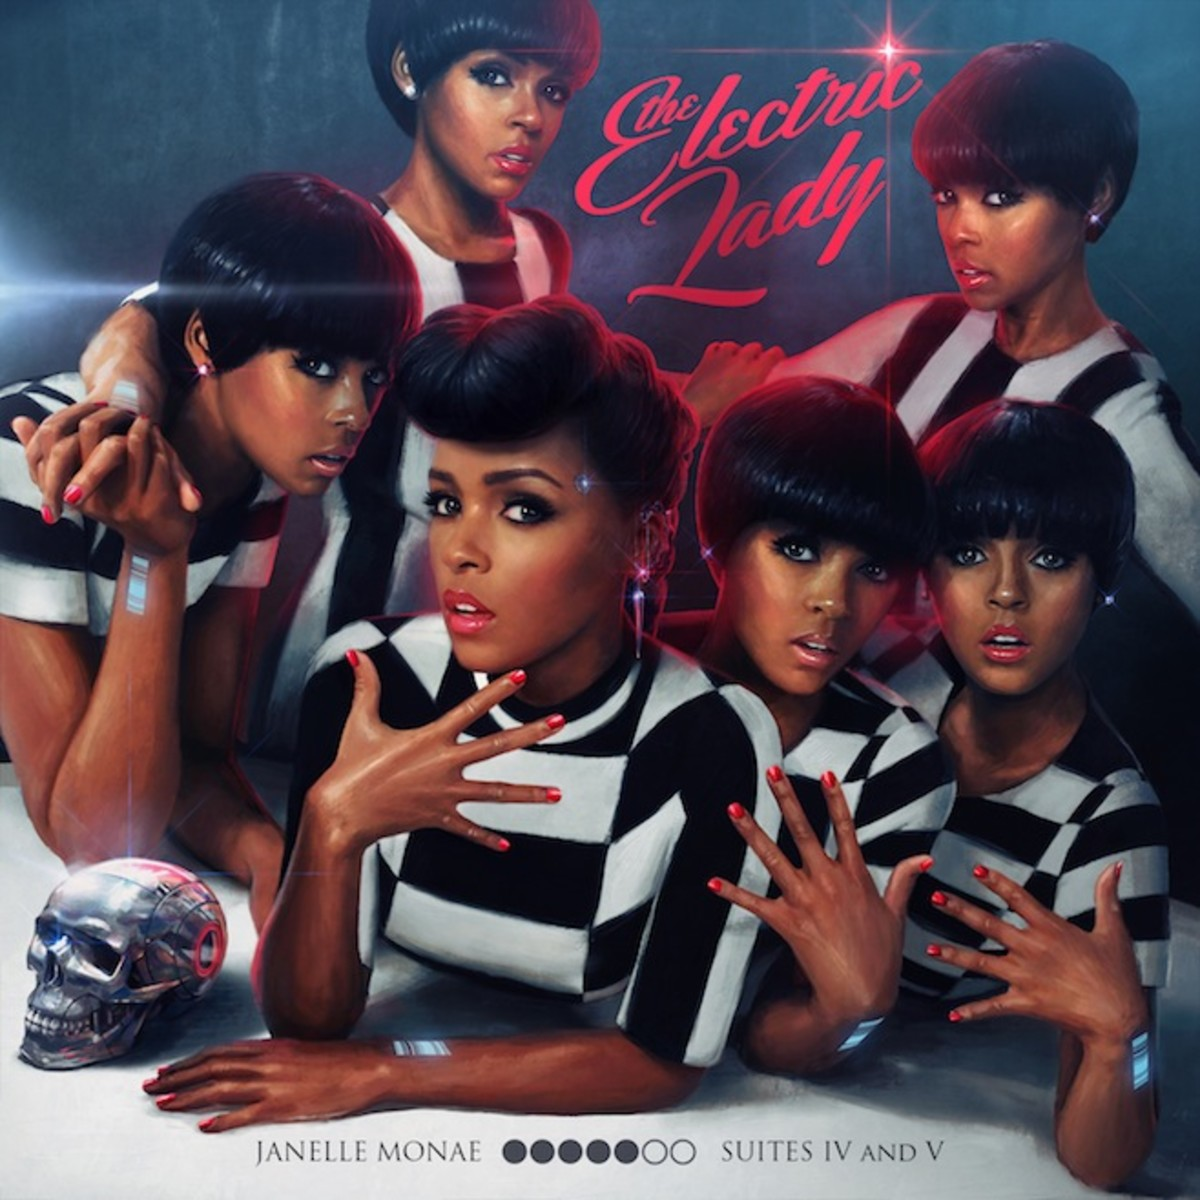 Janelle Monae electric lady review